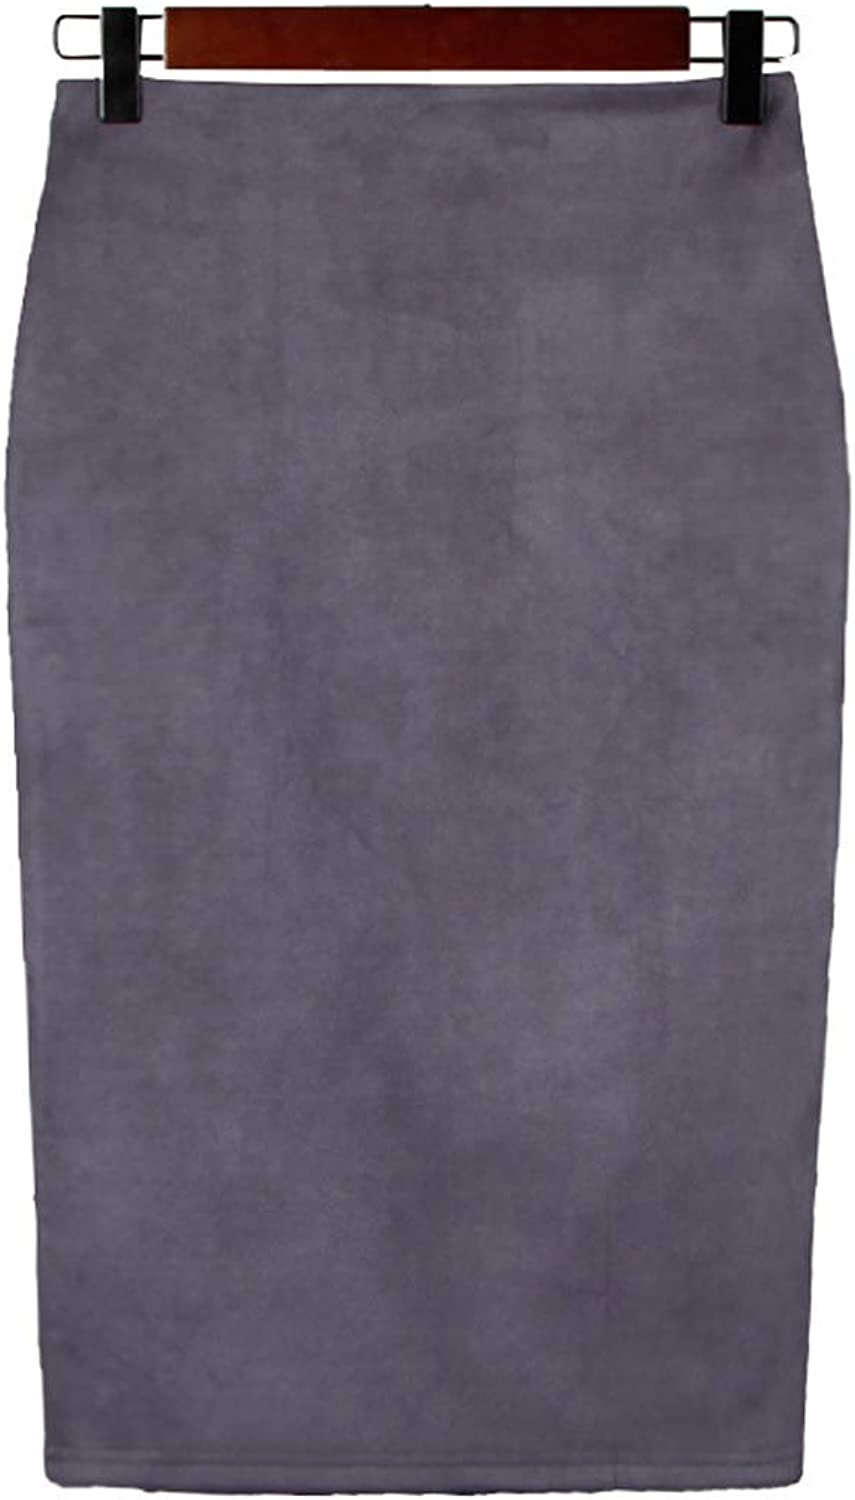 Chartou Womens Lightweight ElasticWaist Faux Suede Leather Side Split Hip Packaged Skirt